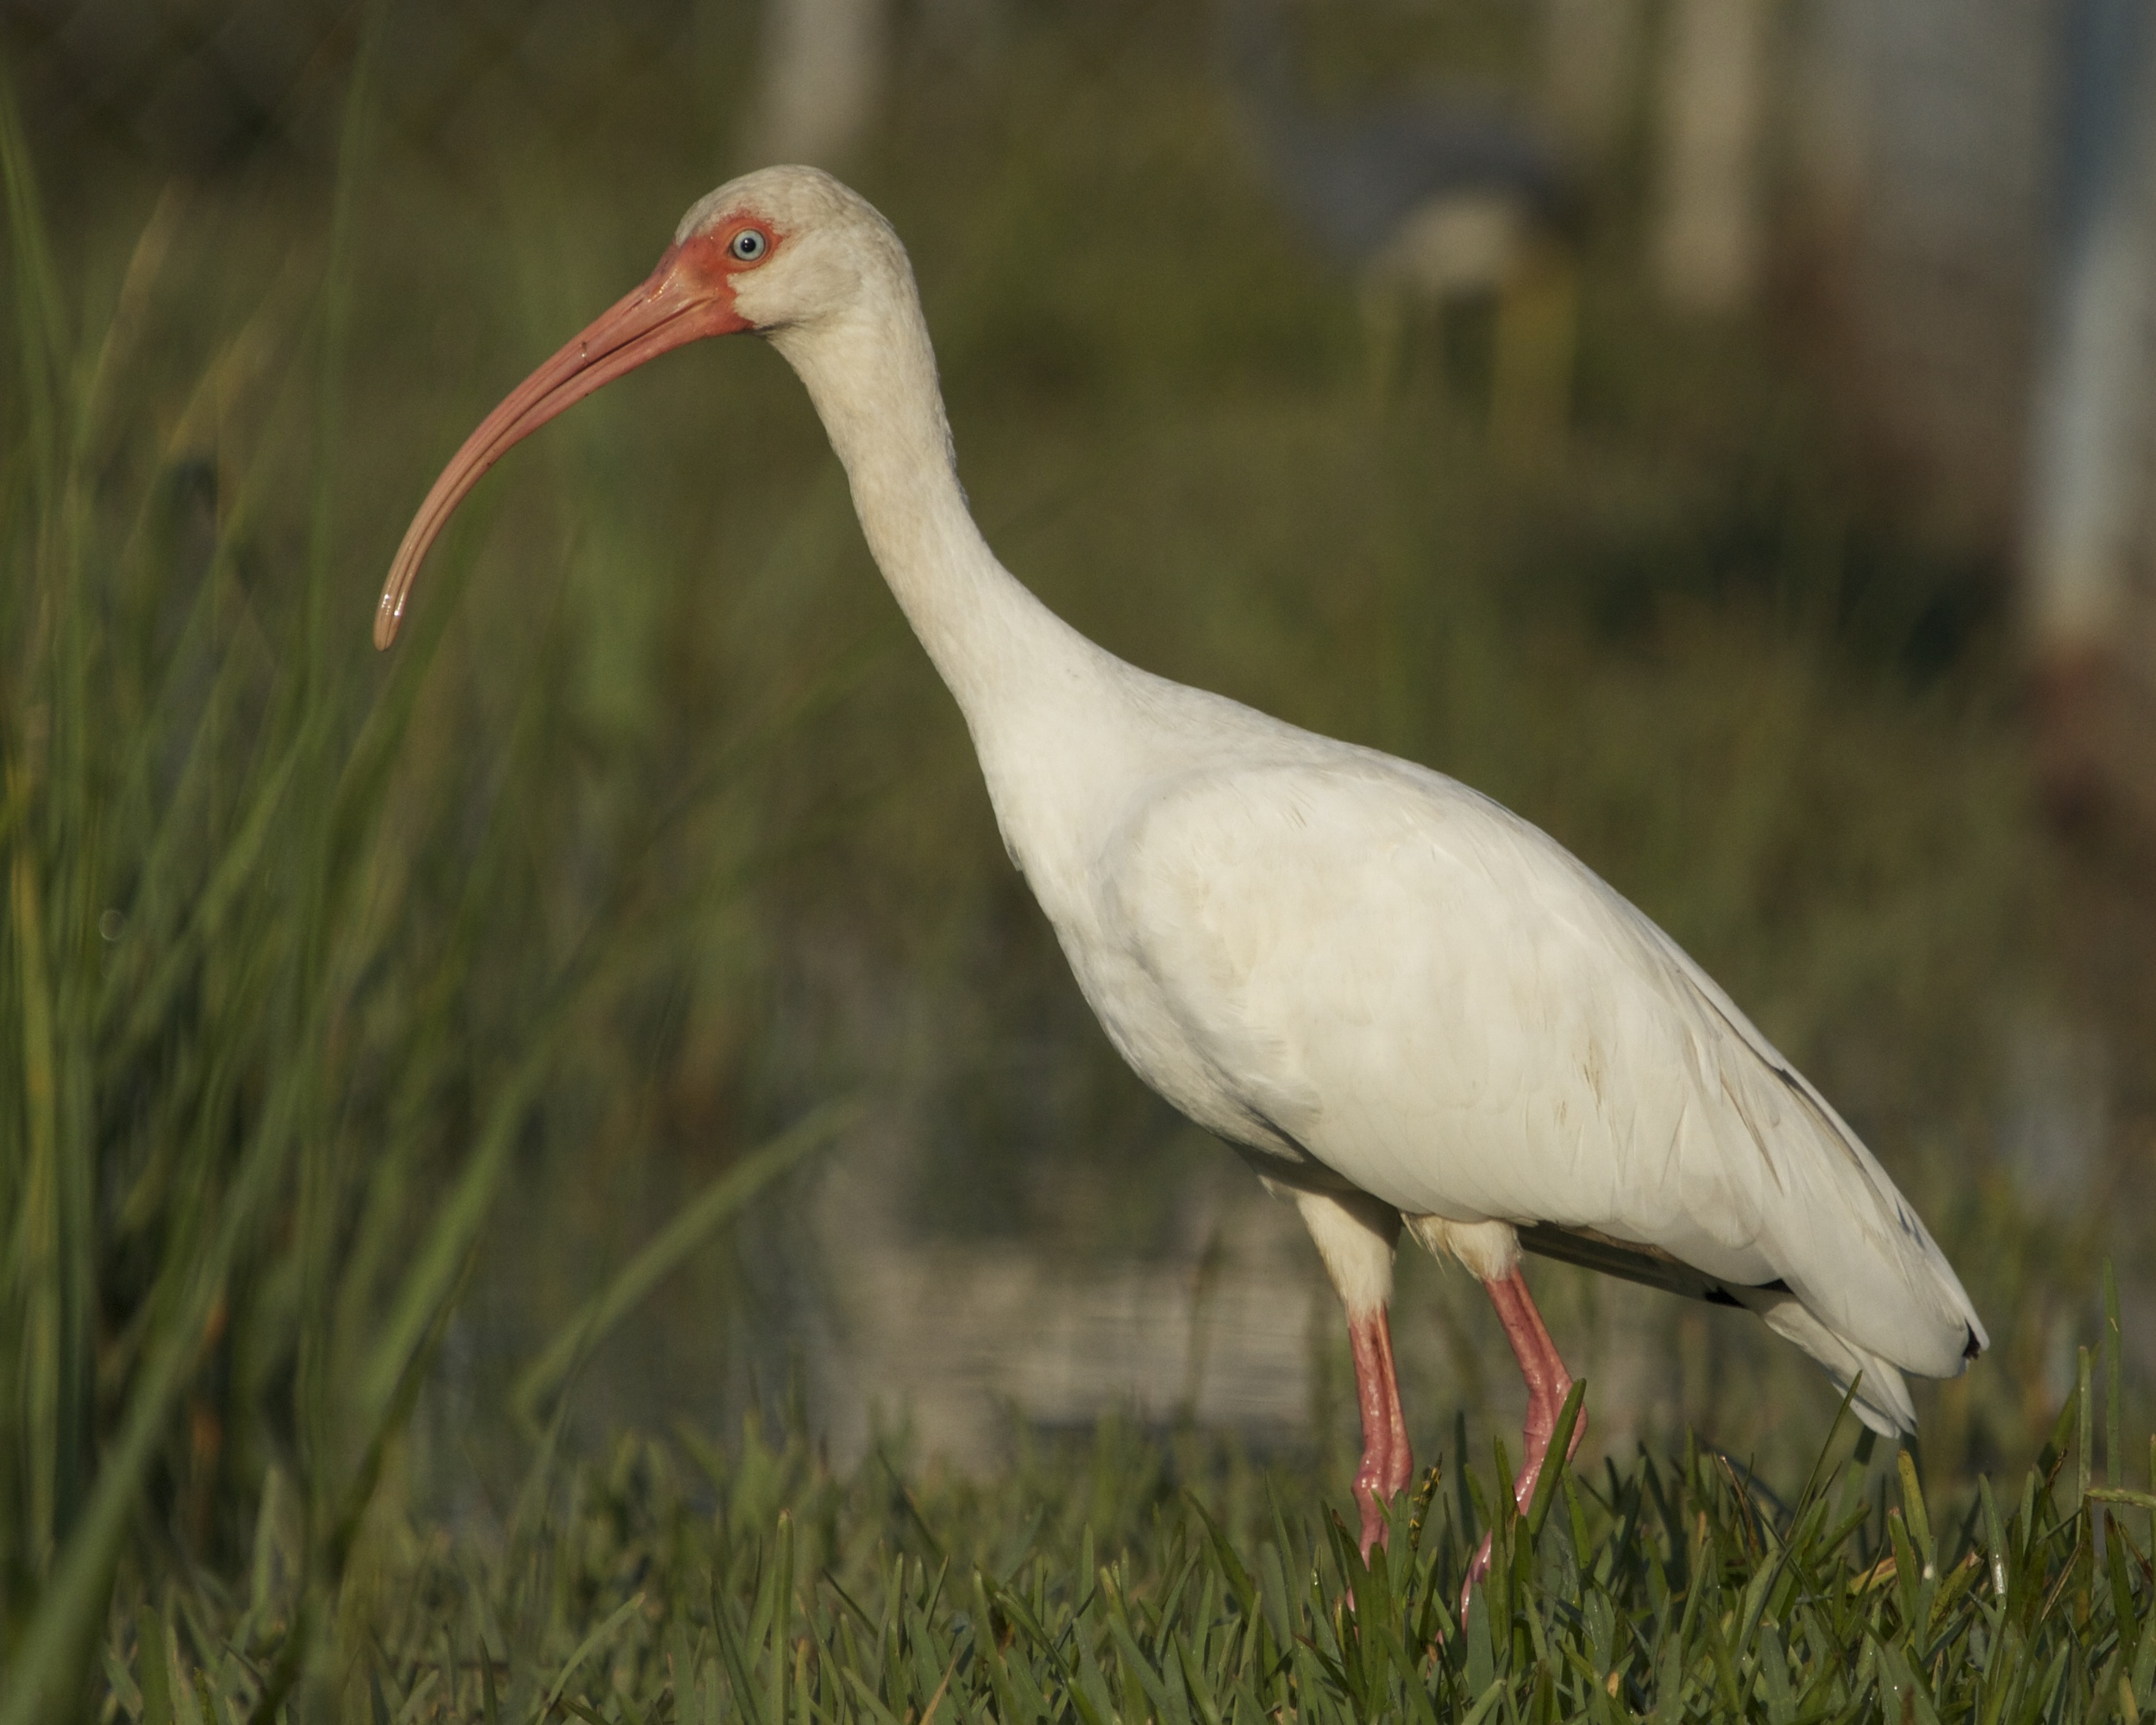 The Ibis looks at me and decides I am no threat.